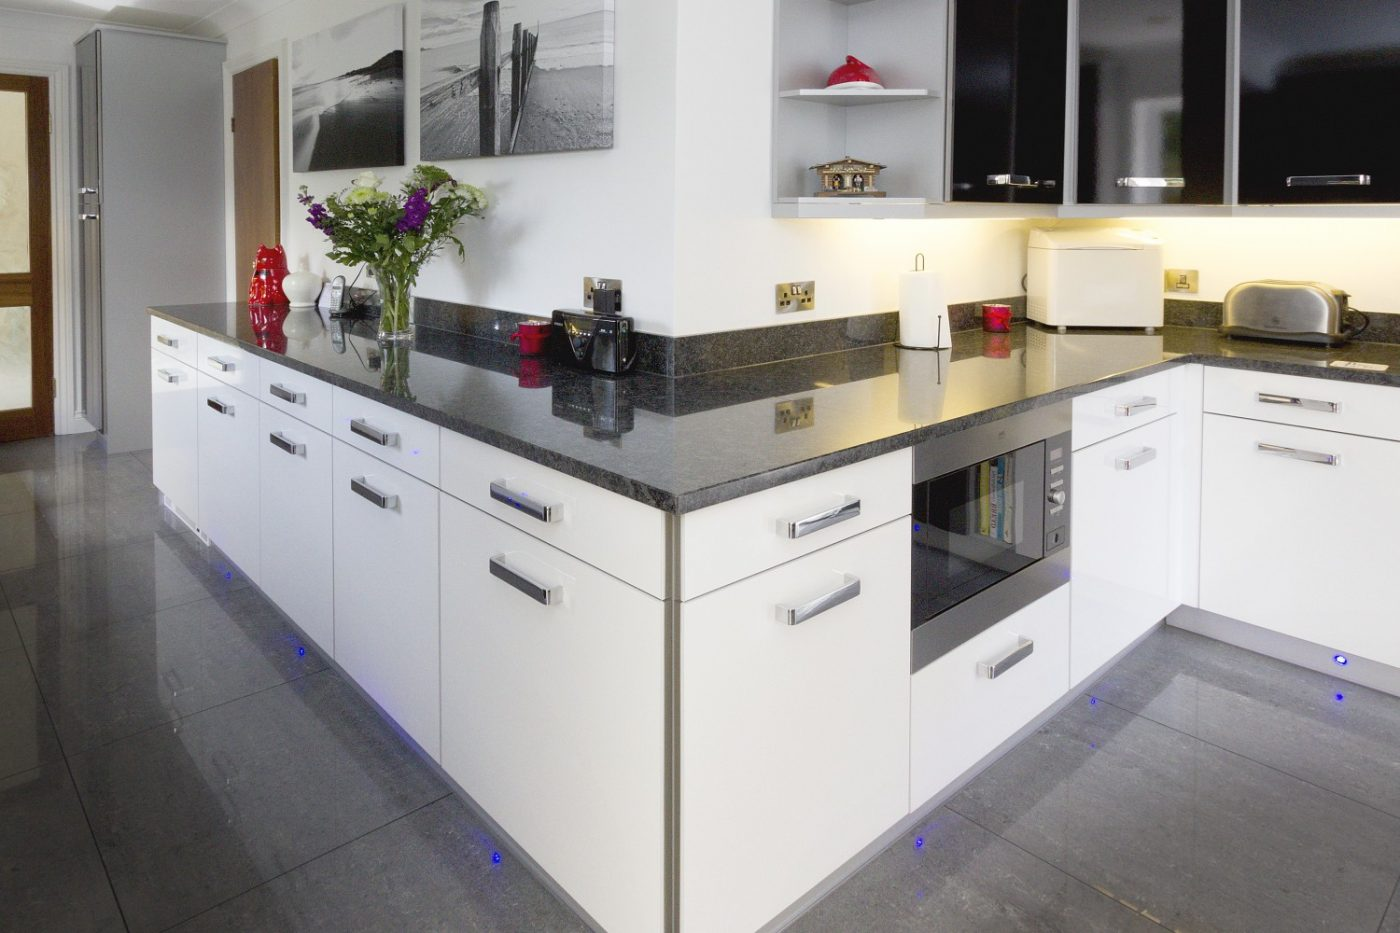 devon kitchen worktop projects in granite and caesarstone. Black Bedroom Furniture Sets. Home Design Ideas